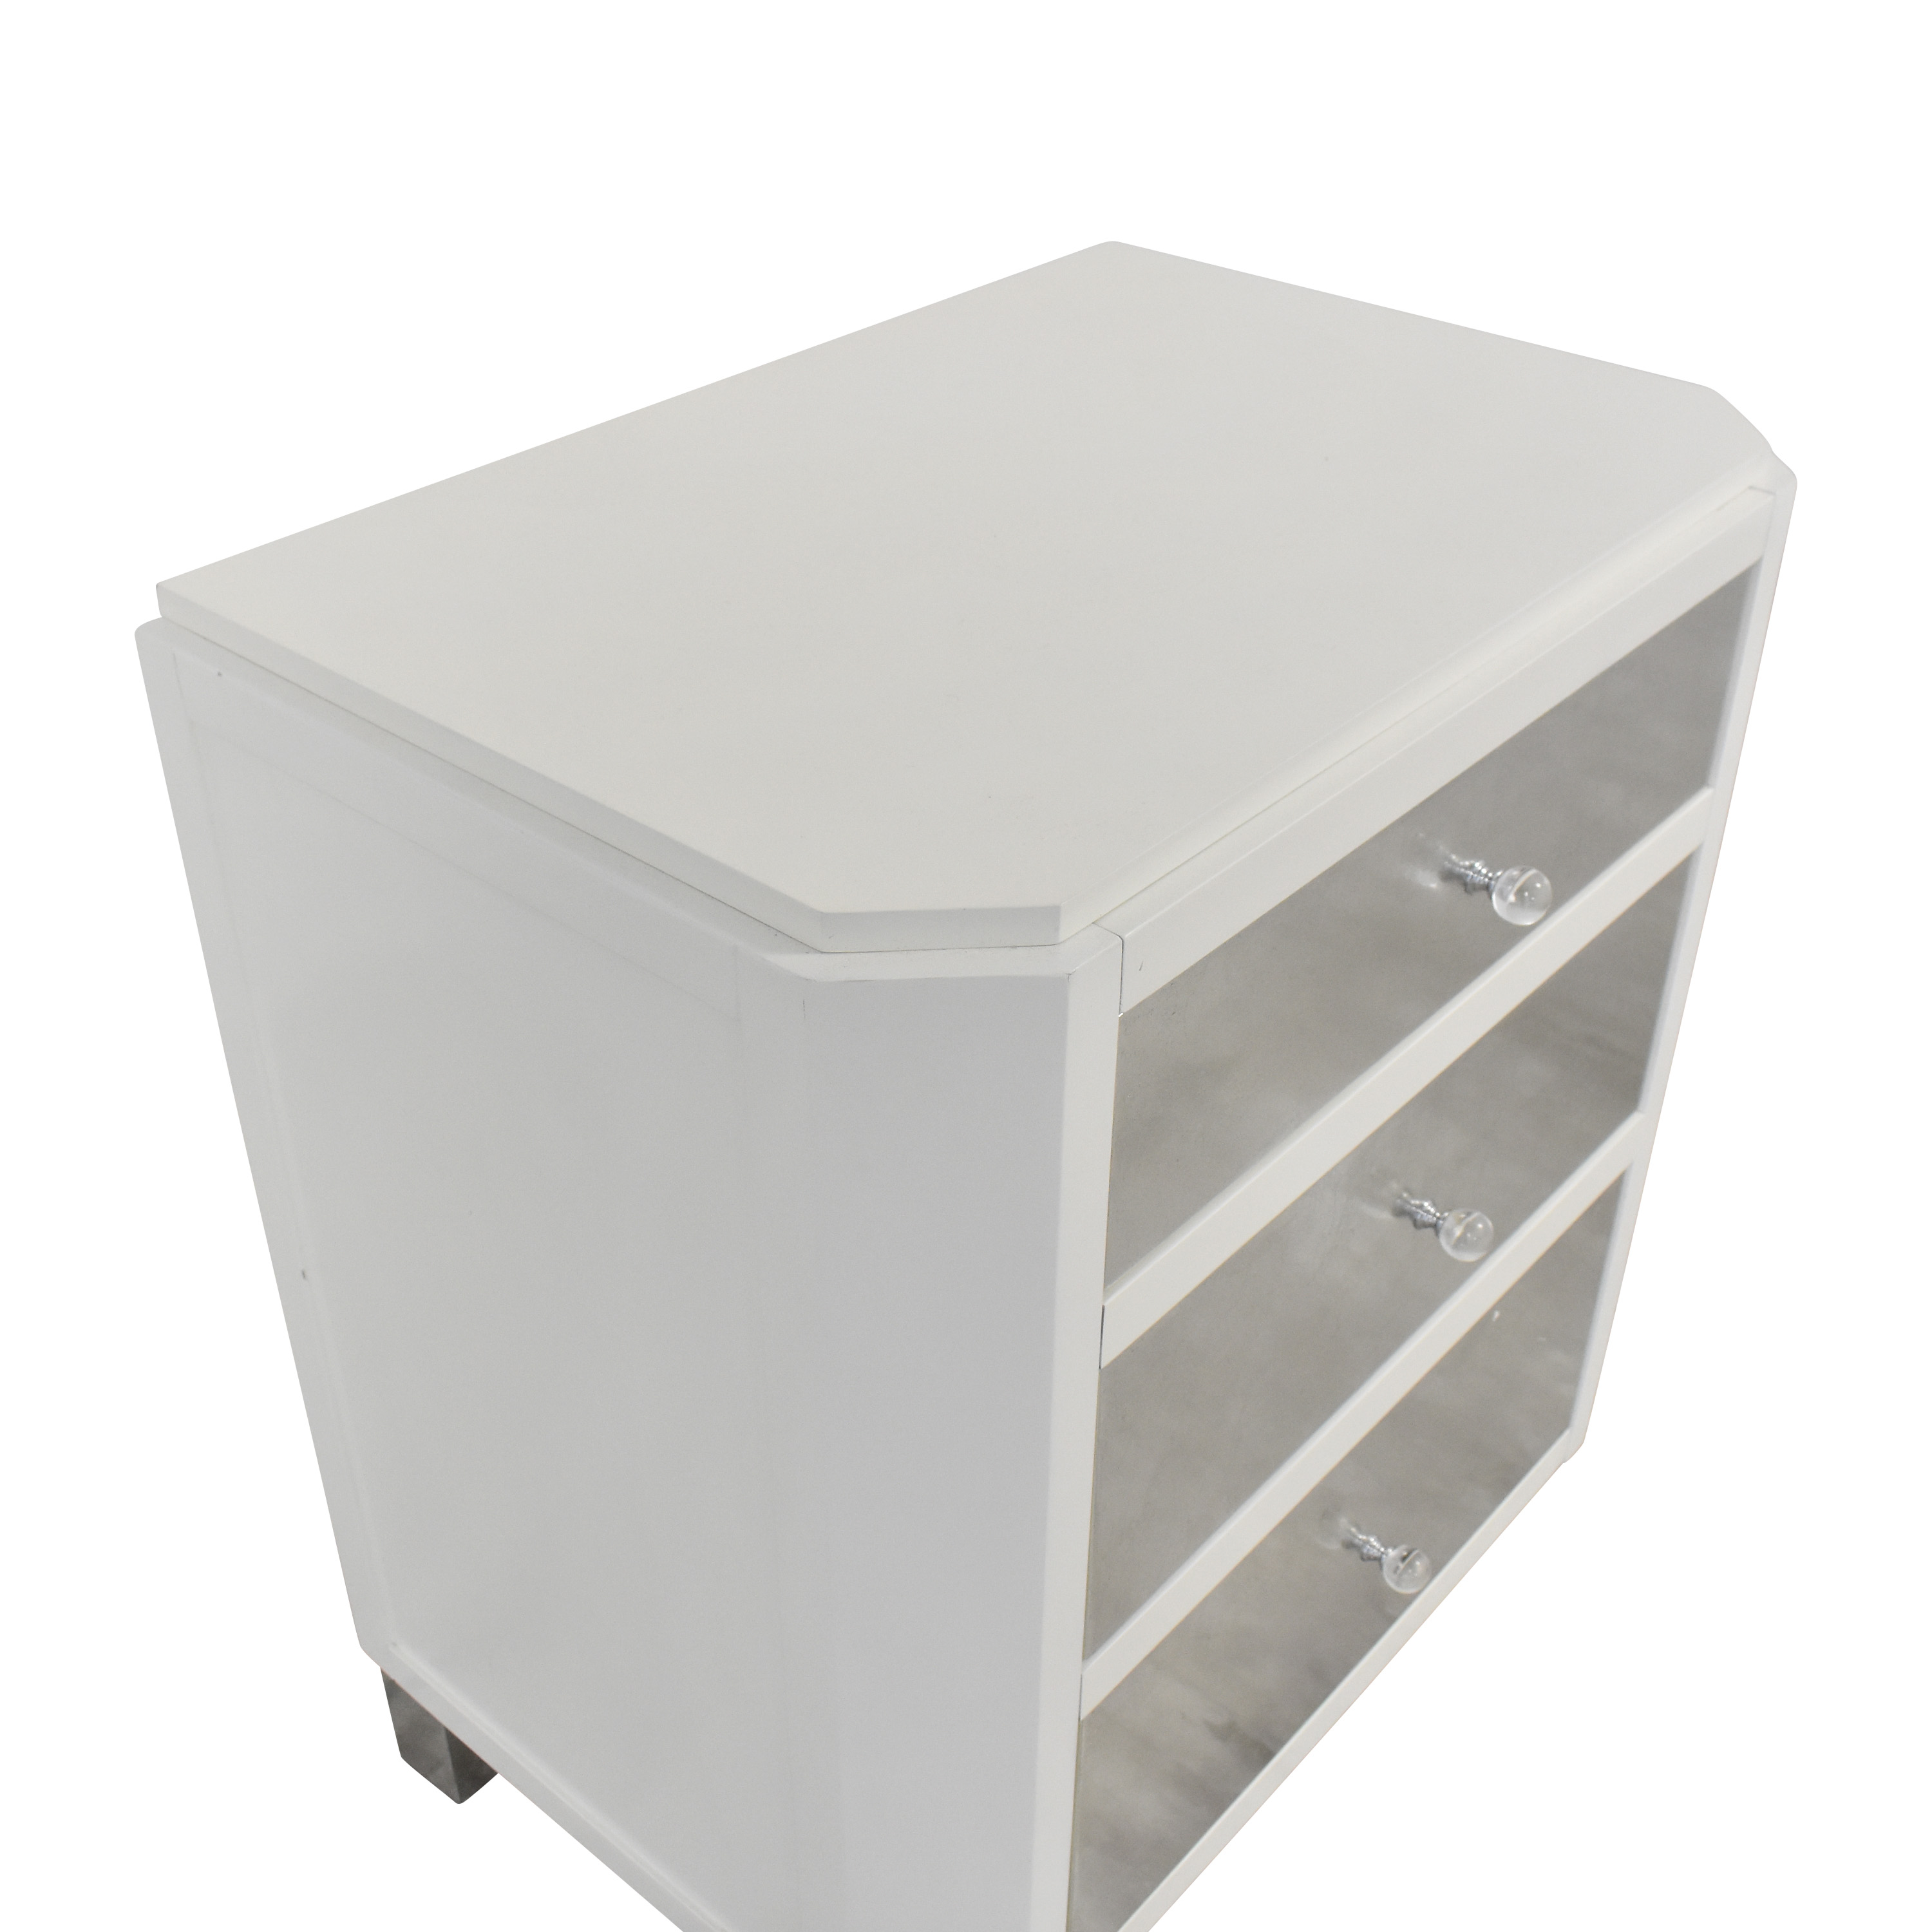 Bungalow 5 Bungalow 5 Three Drawer Chest discount